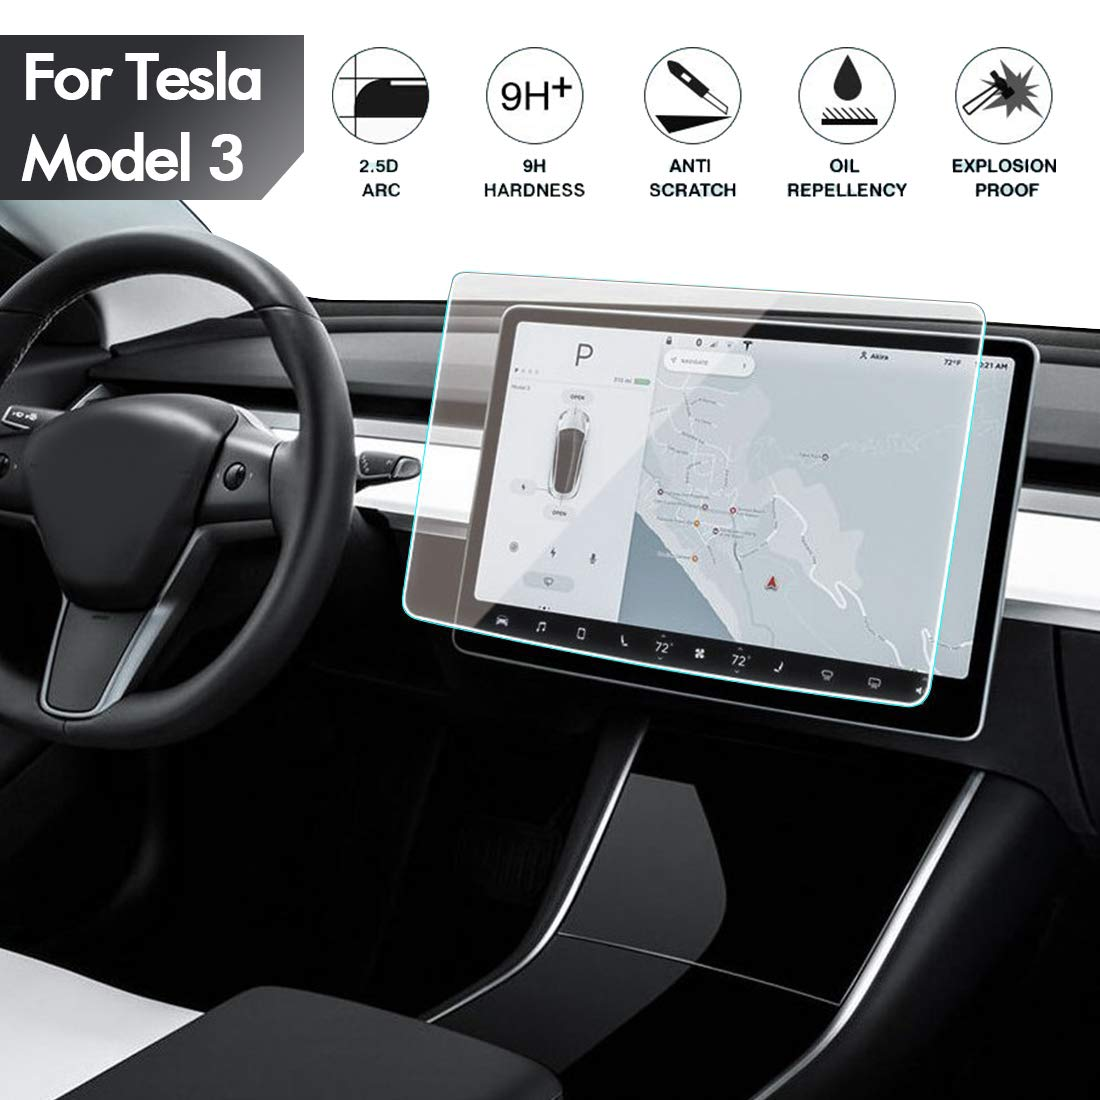 Center Control Touch Screen Car Navigation Tempered Glass Screen Protector, 9H Anti-Scratch and Shock Resistant for Tesla Model 3 Screen Cover P50 P65 P80 P80D 15